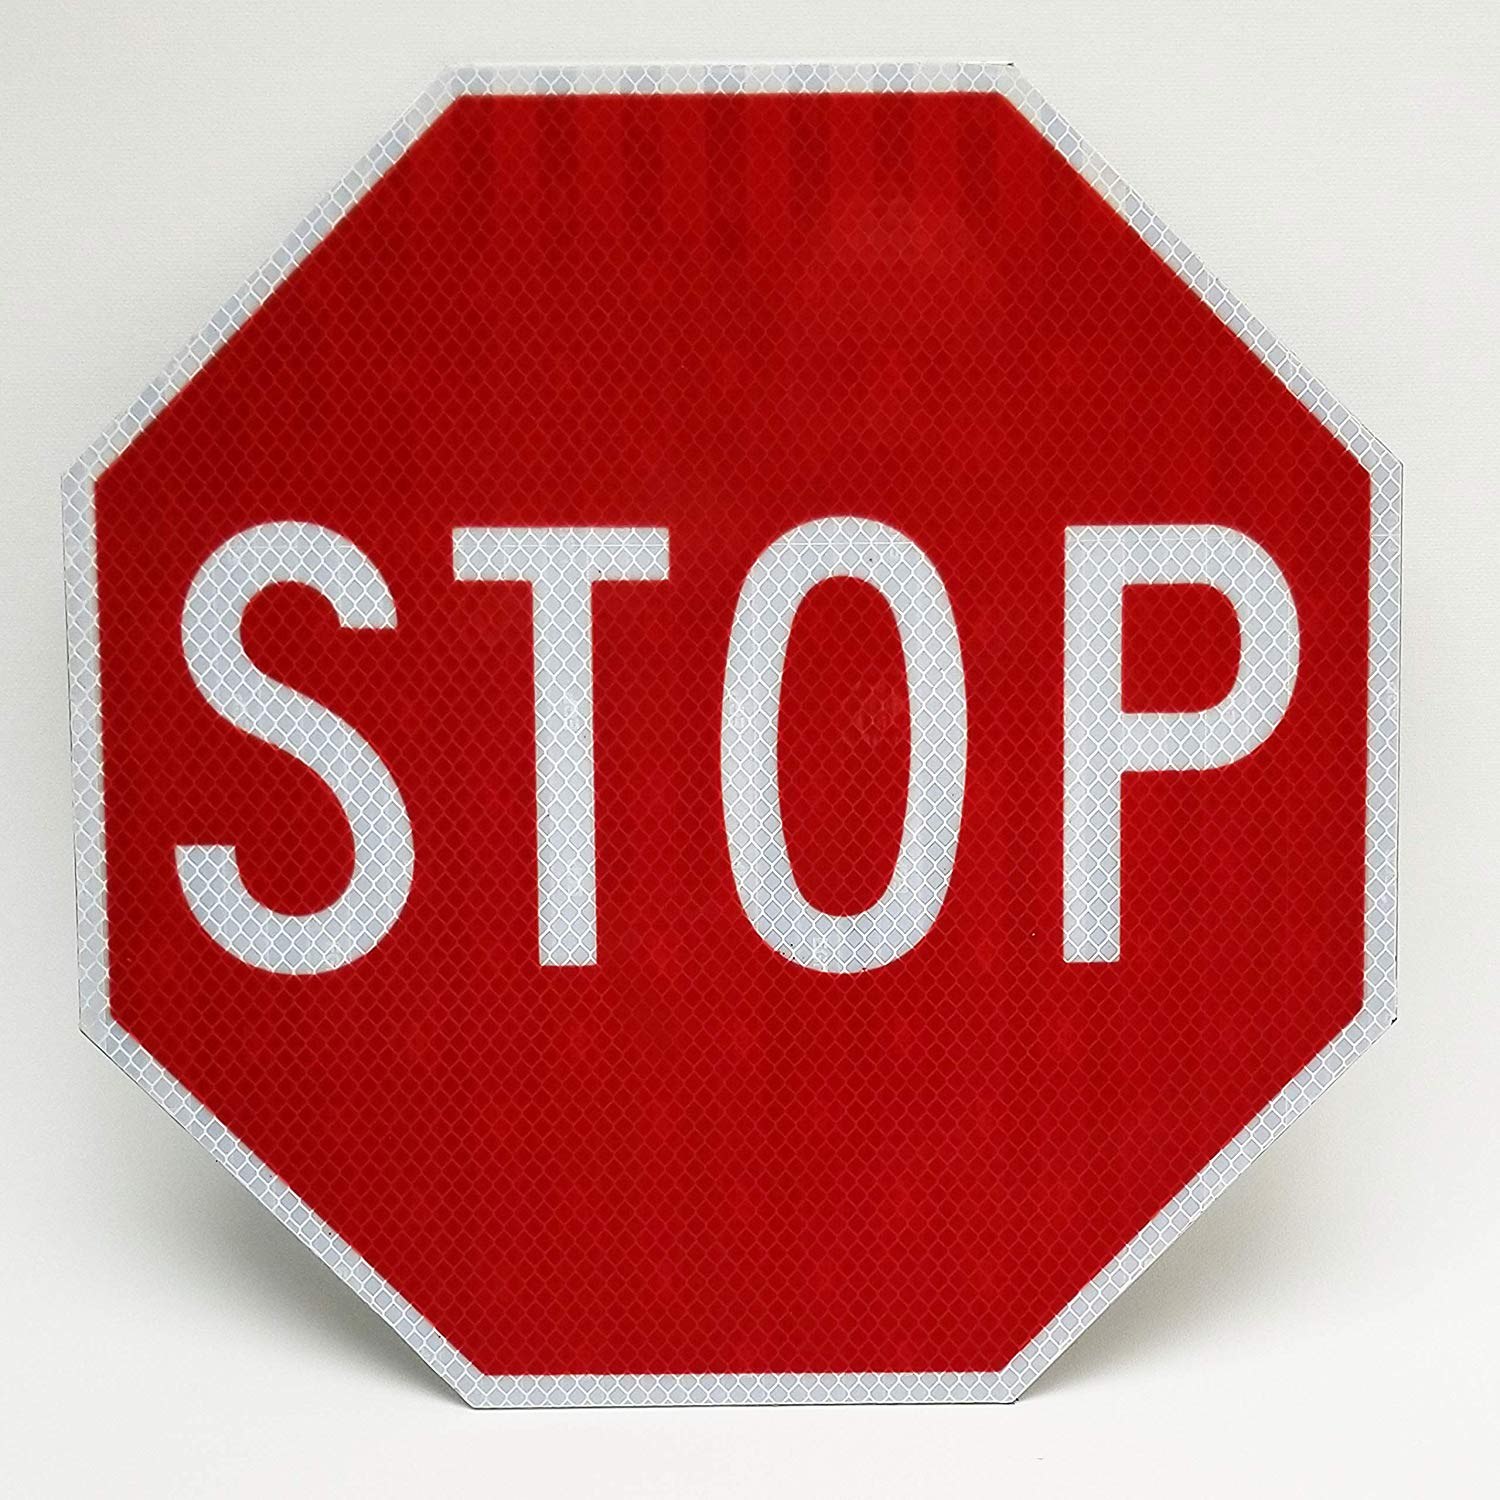 Highway traffic supply sign. Stop